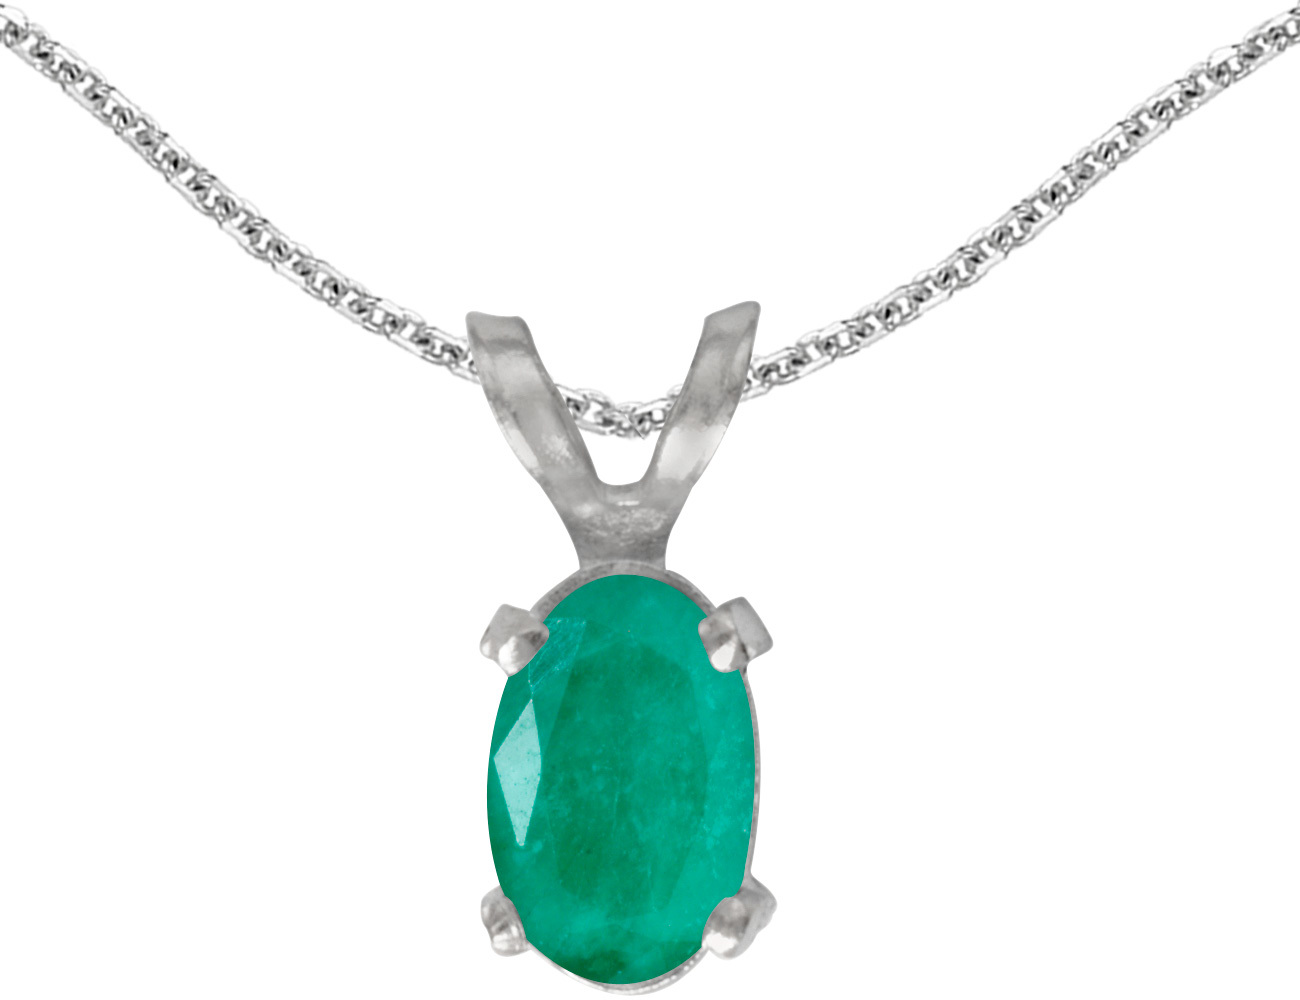 14k White Gold Oval Emerald Pendant (Chain NOT included)